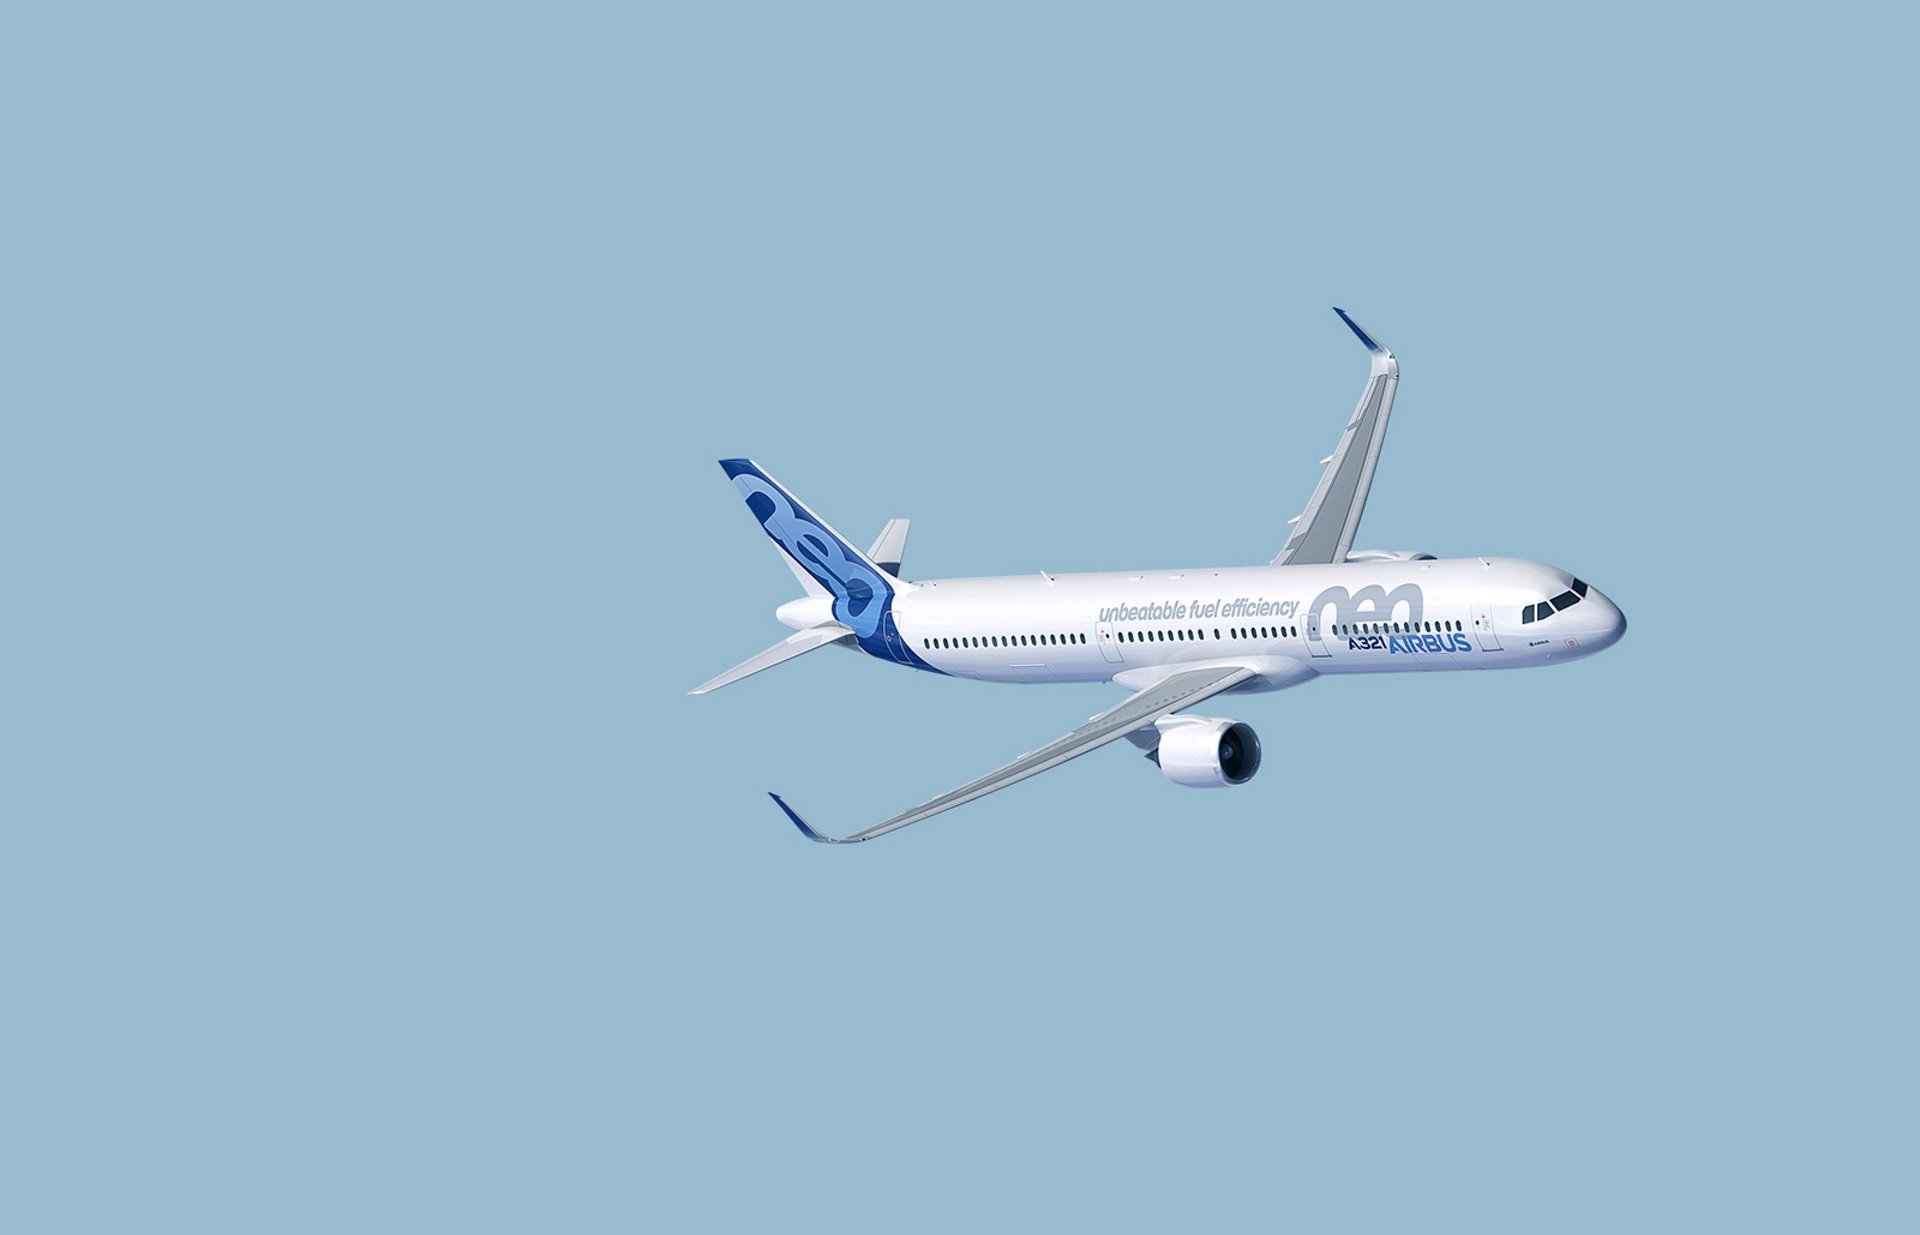 DAE to lease 7 Airbus aircraft to India's IndiGo